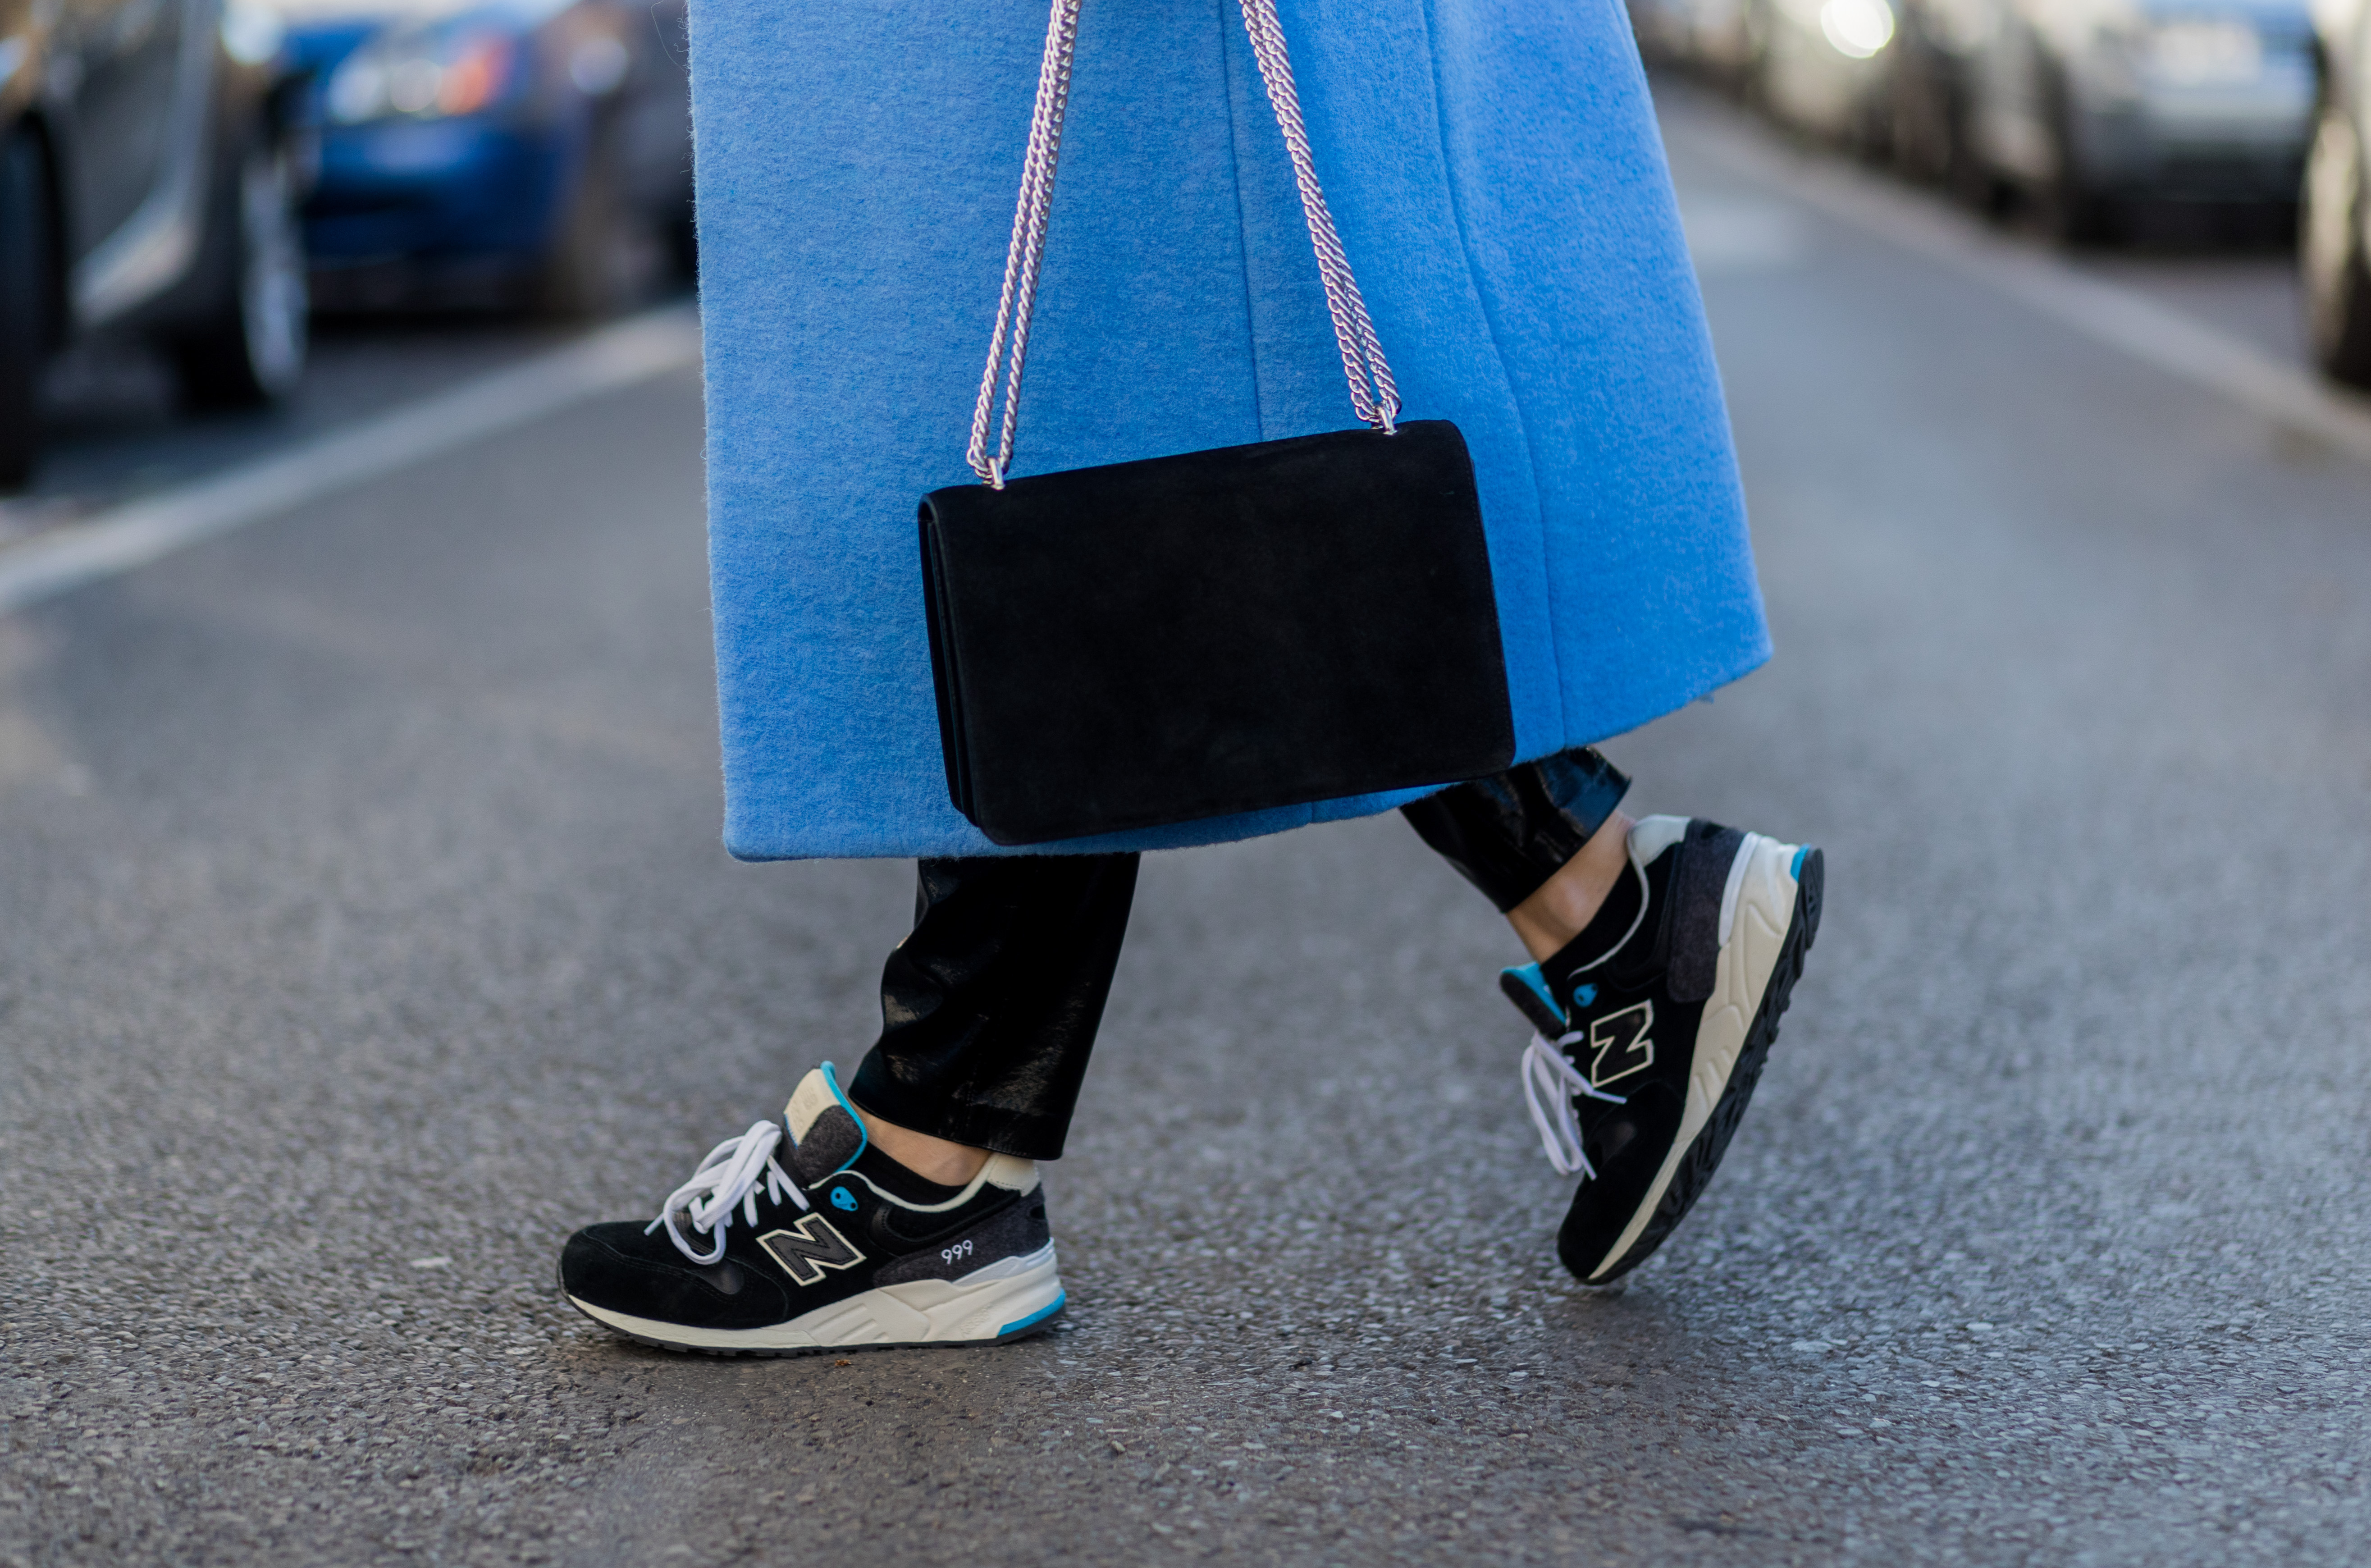 50% off new arrival details for The 20 Most Comfortable Sneakers, According to Customer Reviews ...